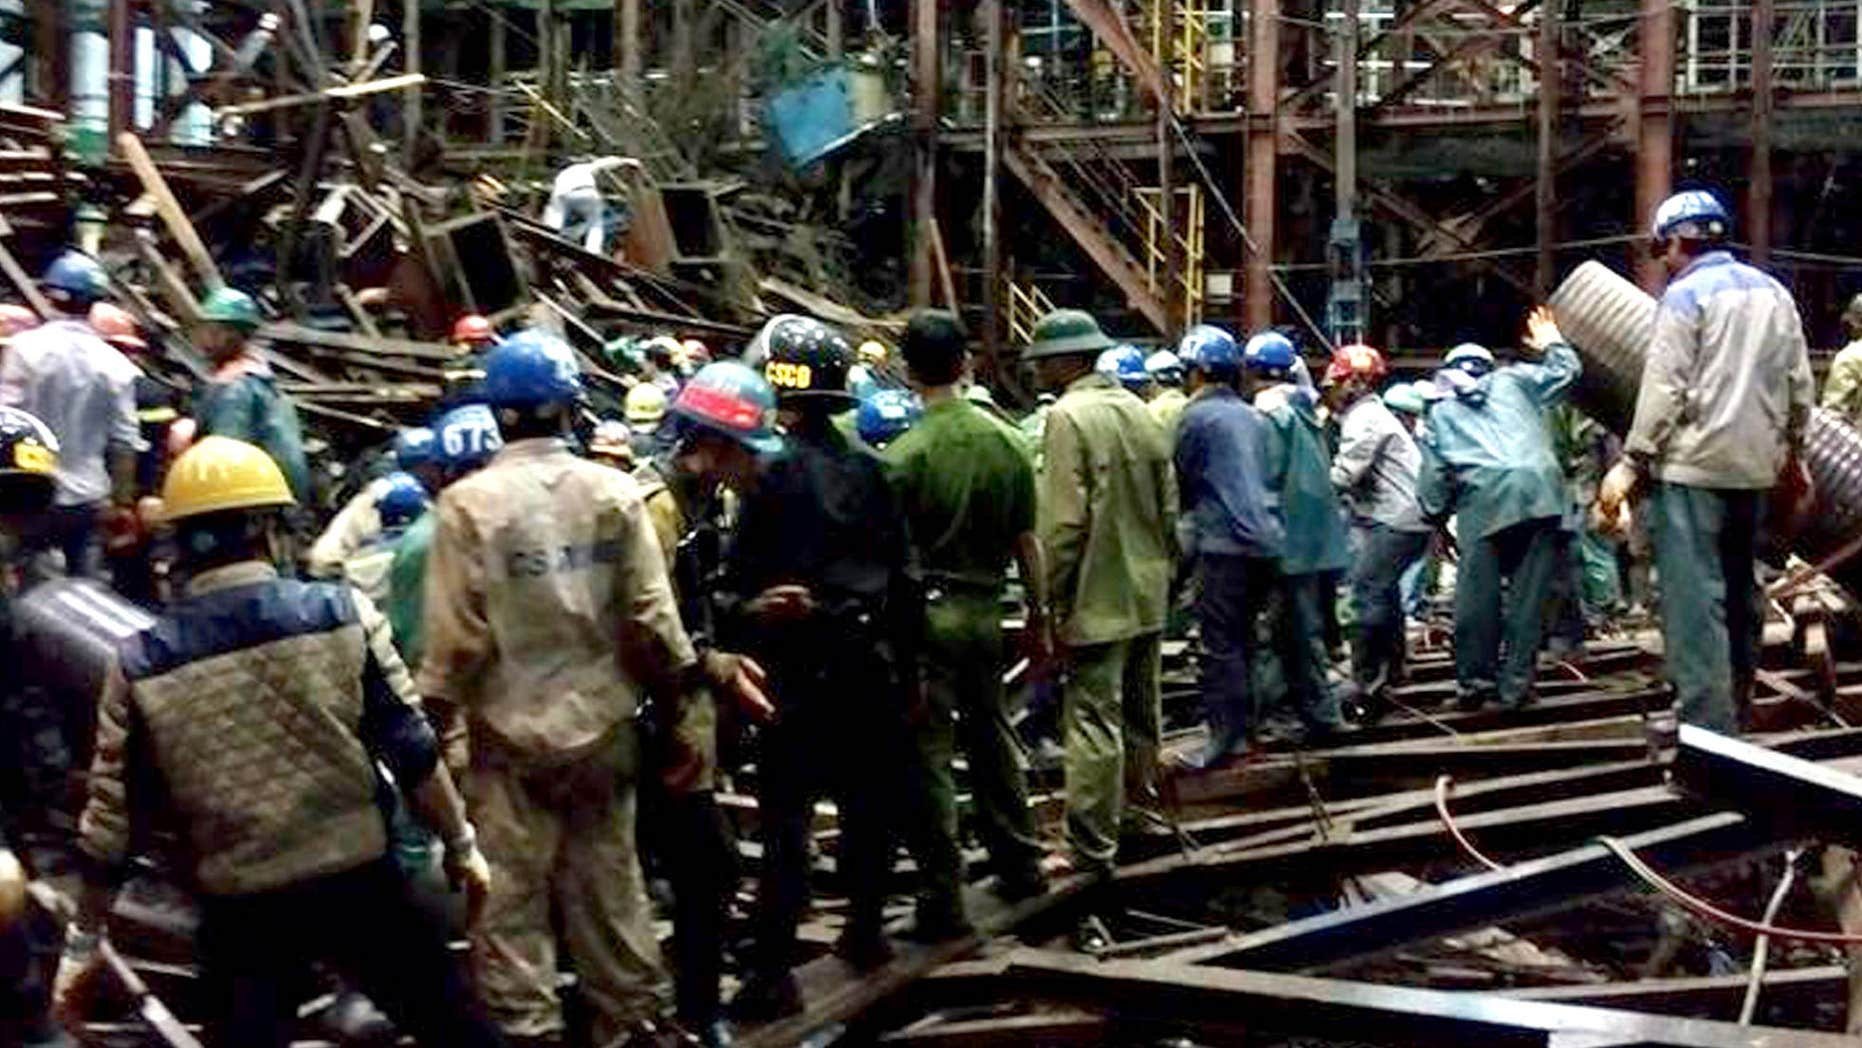 March 25, 2015: Rescuers work through the rubble trying to find survivors after scaffolding collapsed in an economic zone in Ha Tinh province in central Vietnam.